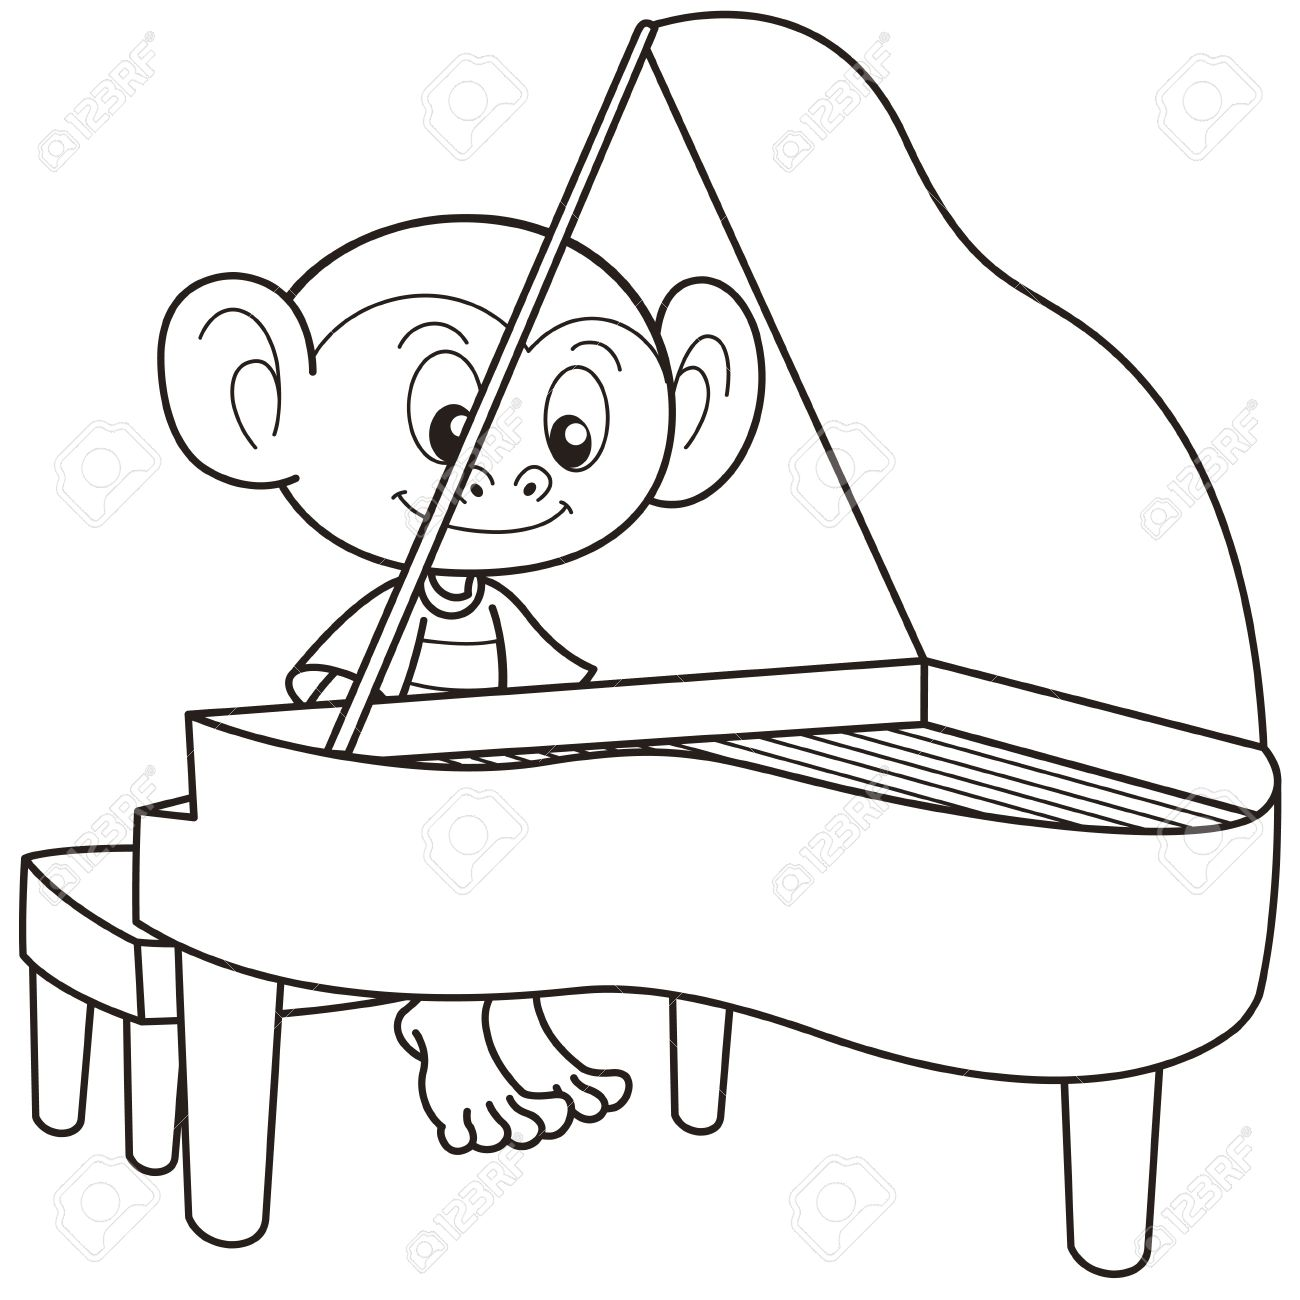 1300x1300 Cartoon Monkey Playing A Piano Black And White Royalty Free